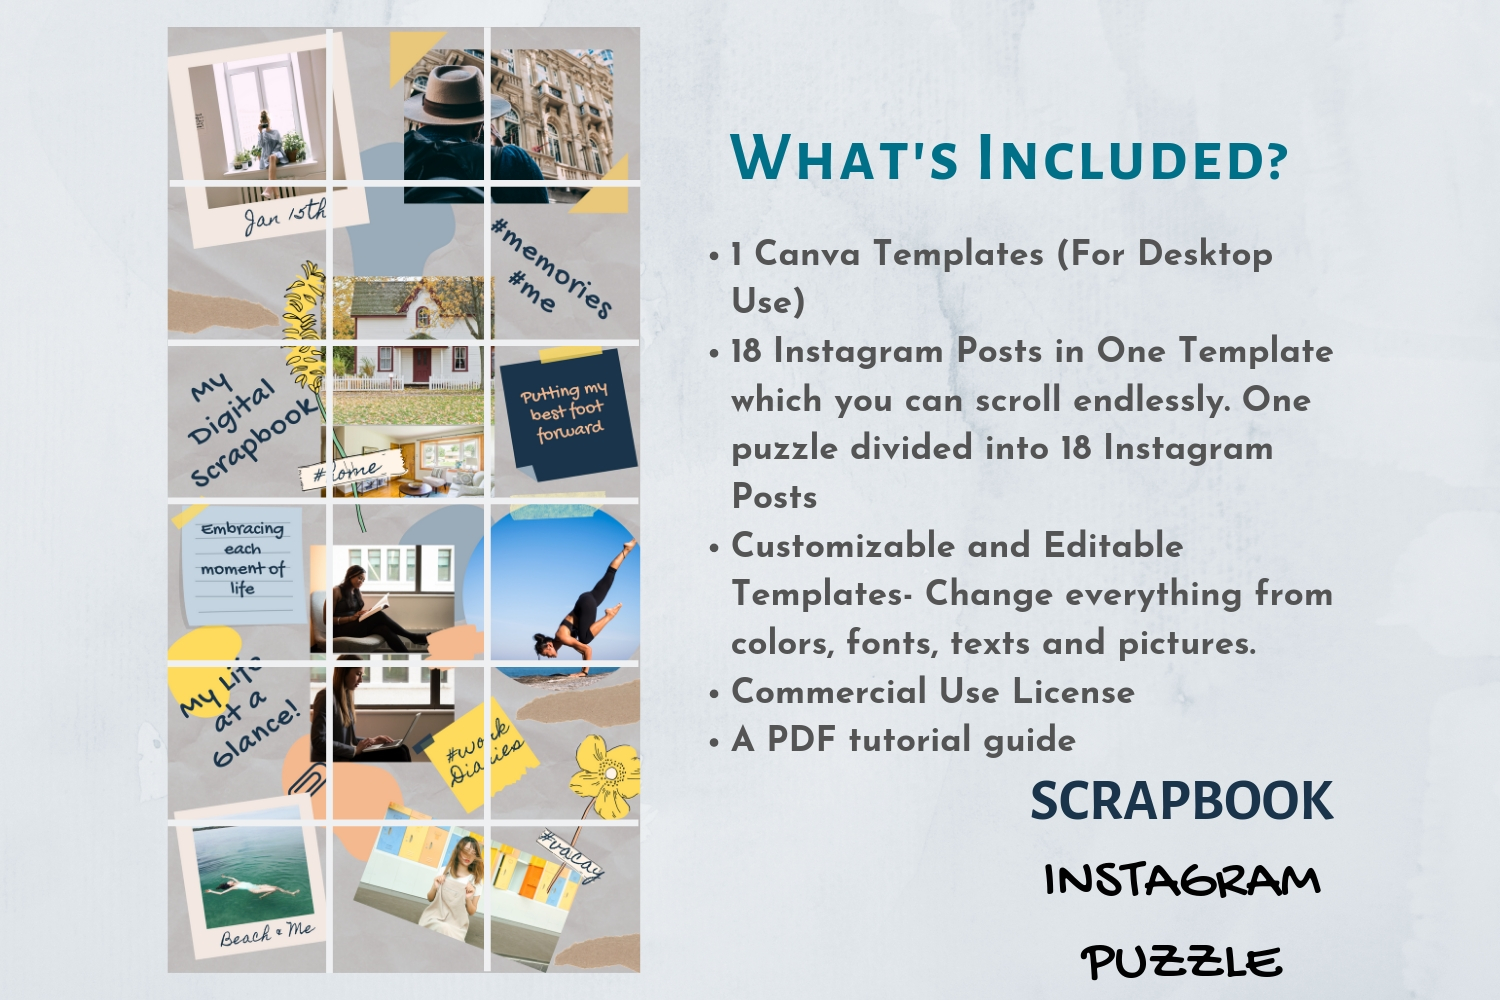 Instagram Puzzle Template Canva- My Scrapbook example image 3